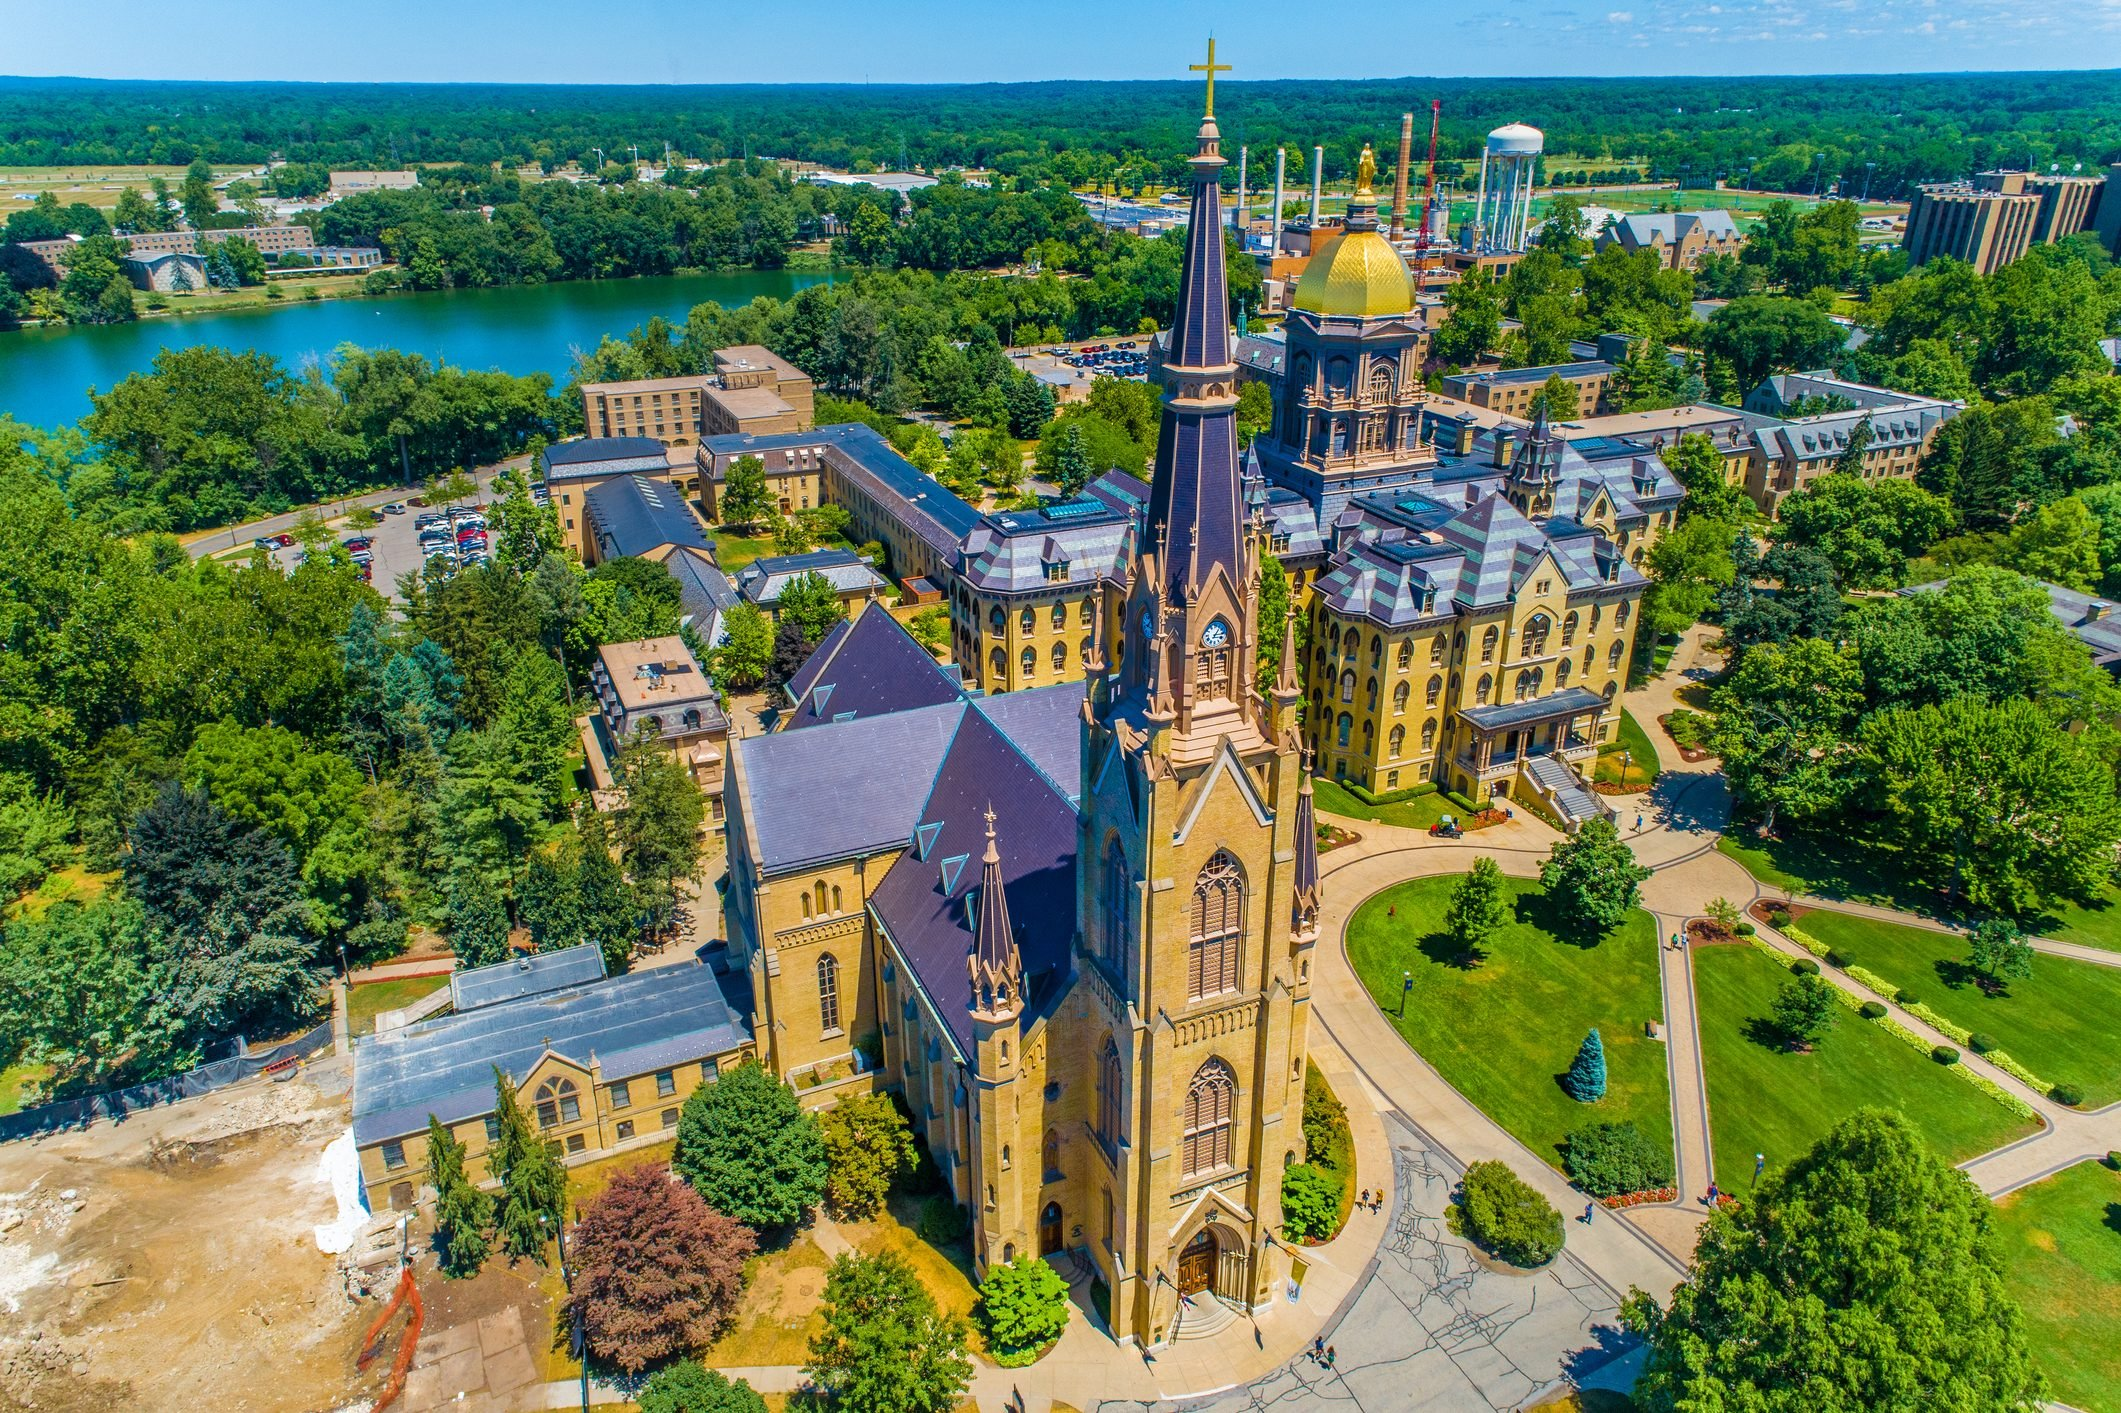 The Basilica of the Sacred Heart on the University of Notre Dame Campus, South Bend, Indiana